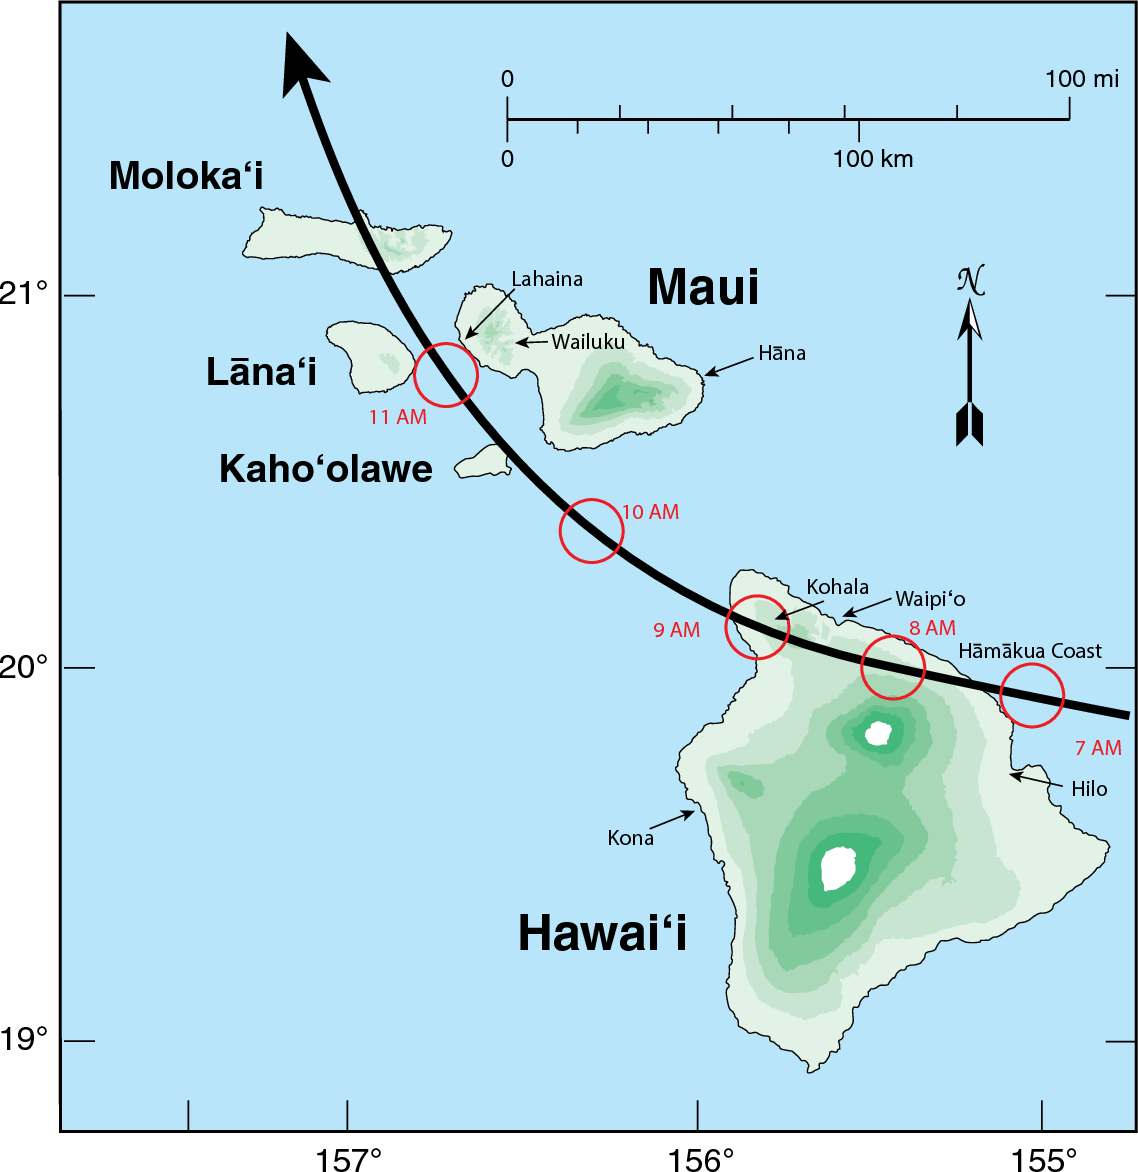 hight resolution of map showing the reconstructed track of the hawaii hurricane across the eastern